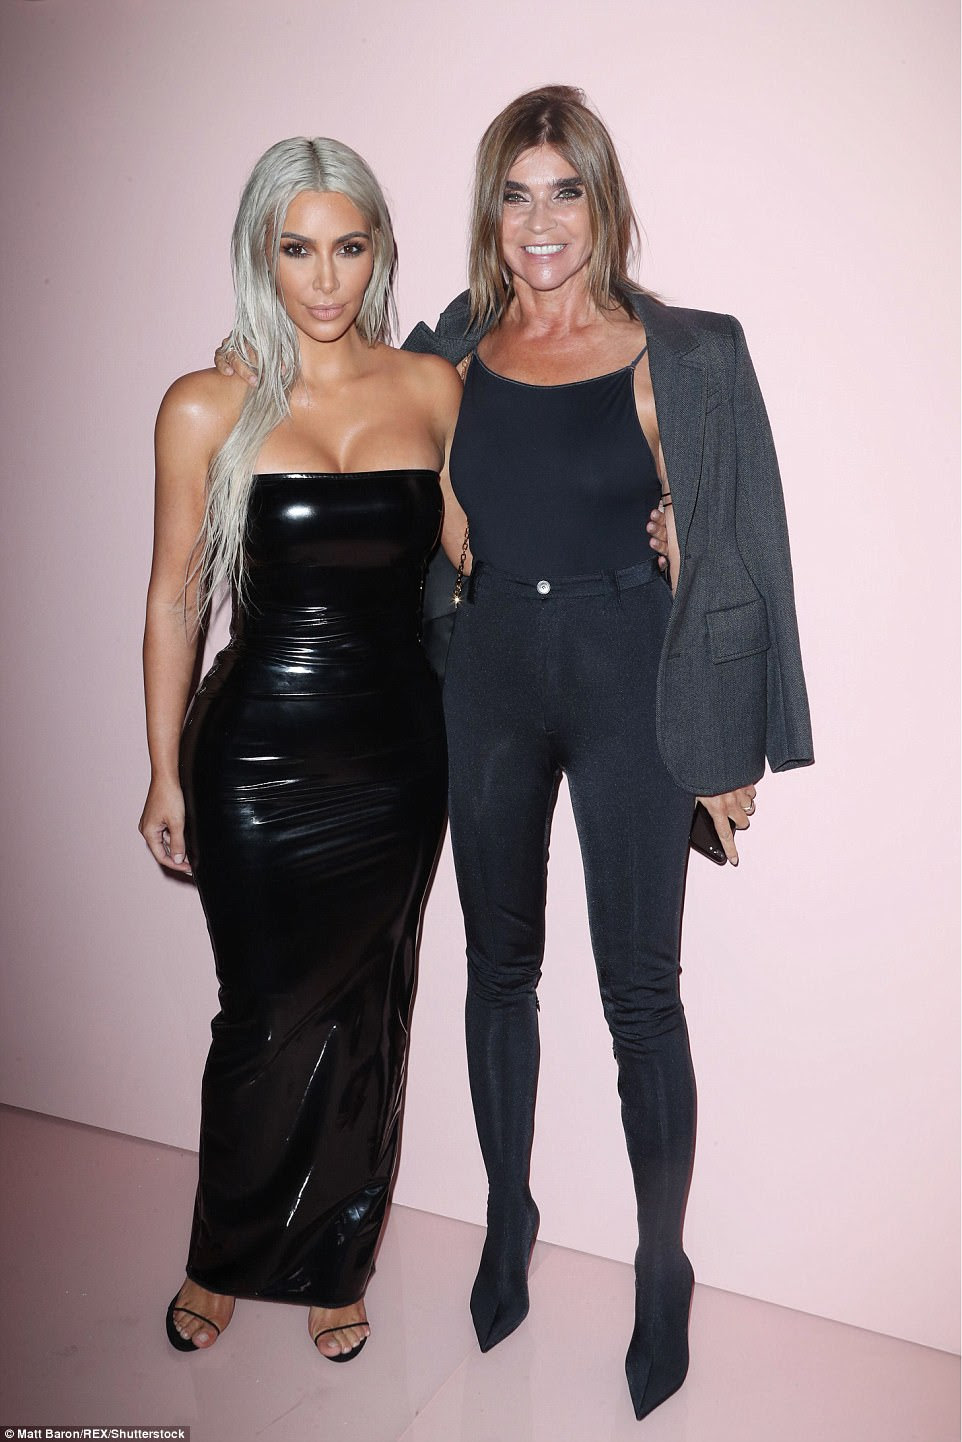 Strike a pose: Before heading to her seat, Kim stopped to take a picture with Carine Roitfeld, the founder and editor-in-chief of CR Fashion Book